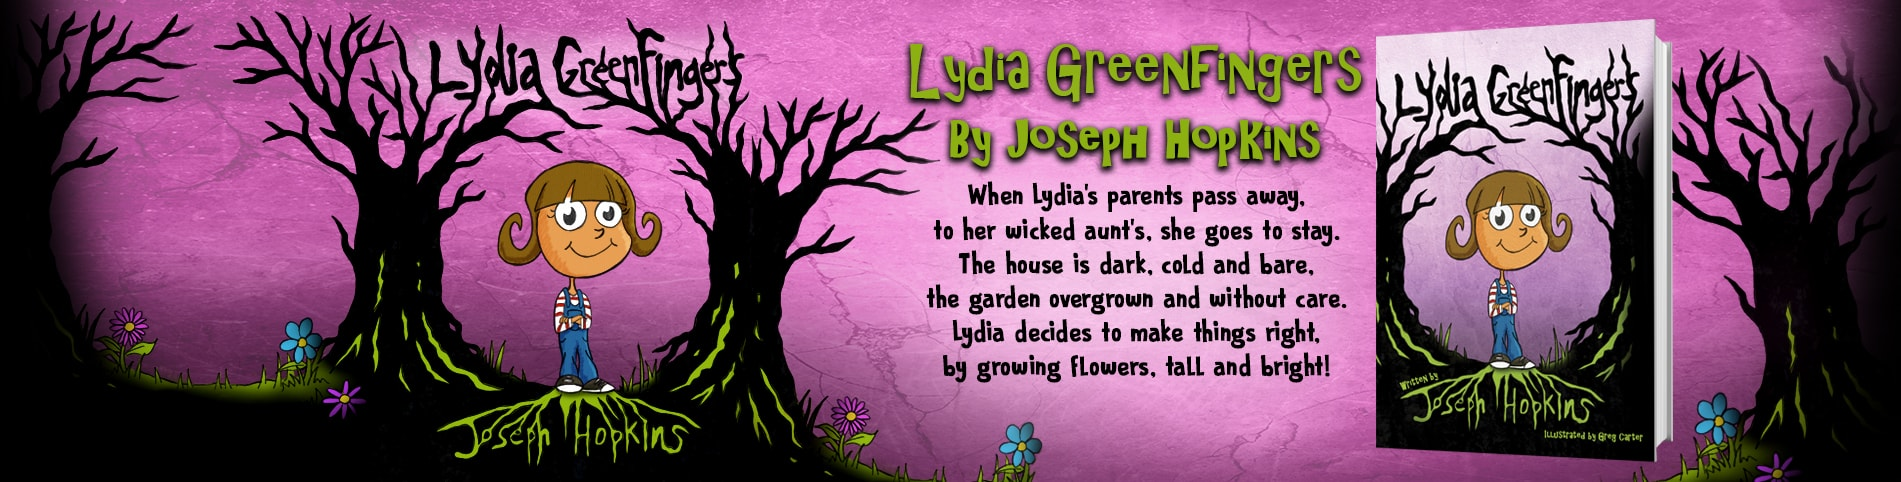 Lydia Greenfingers